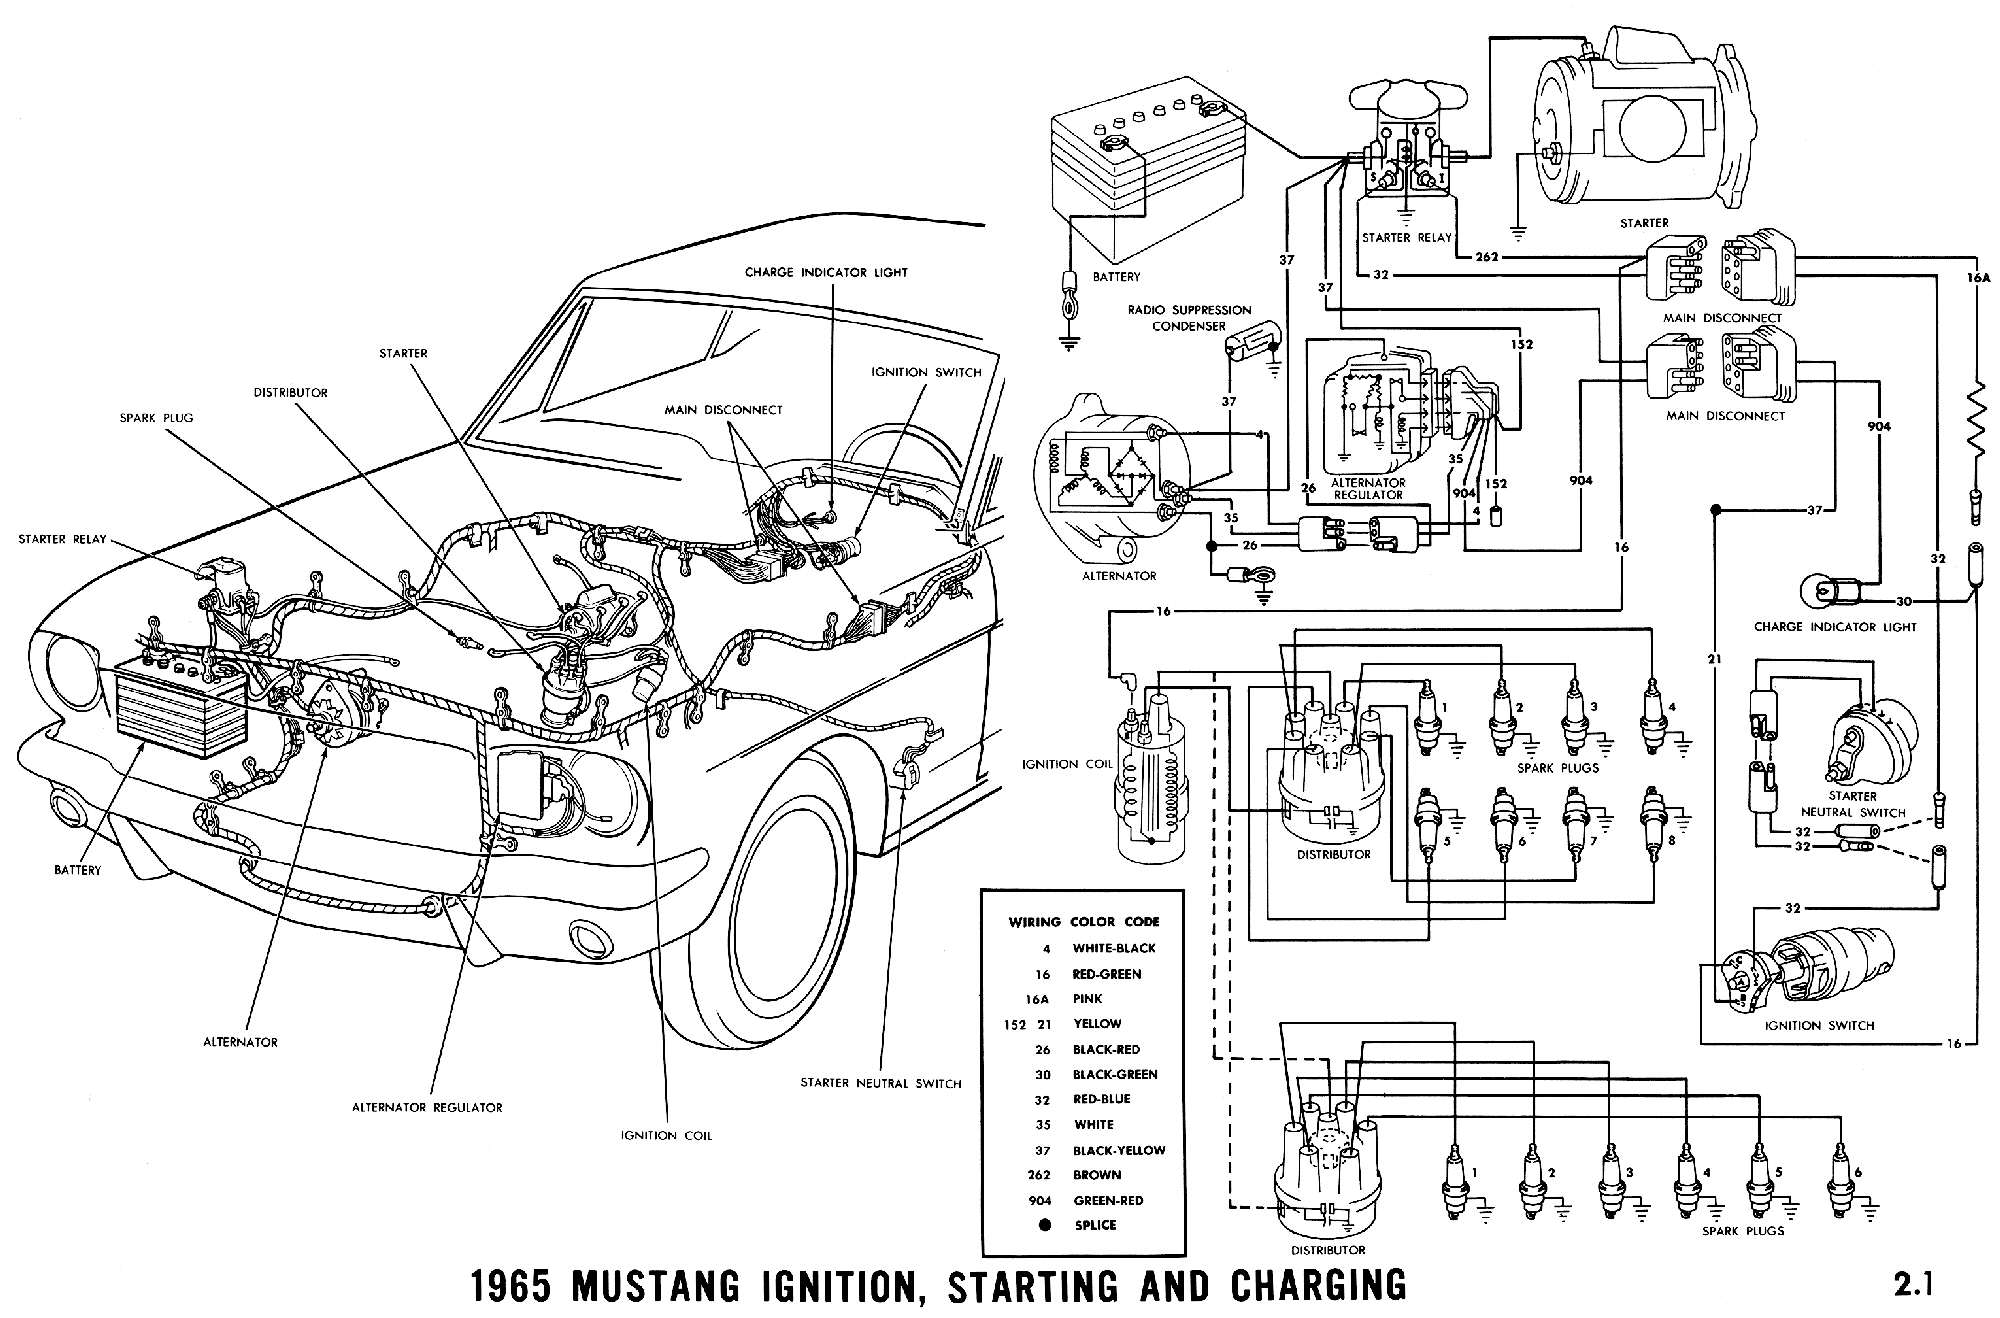 1965c 1965 mustang wiring diagrams average joe restoration  at readyjetset.co